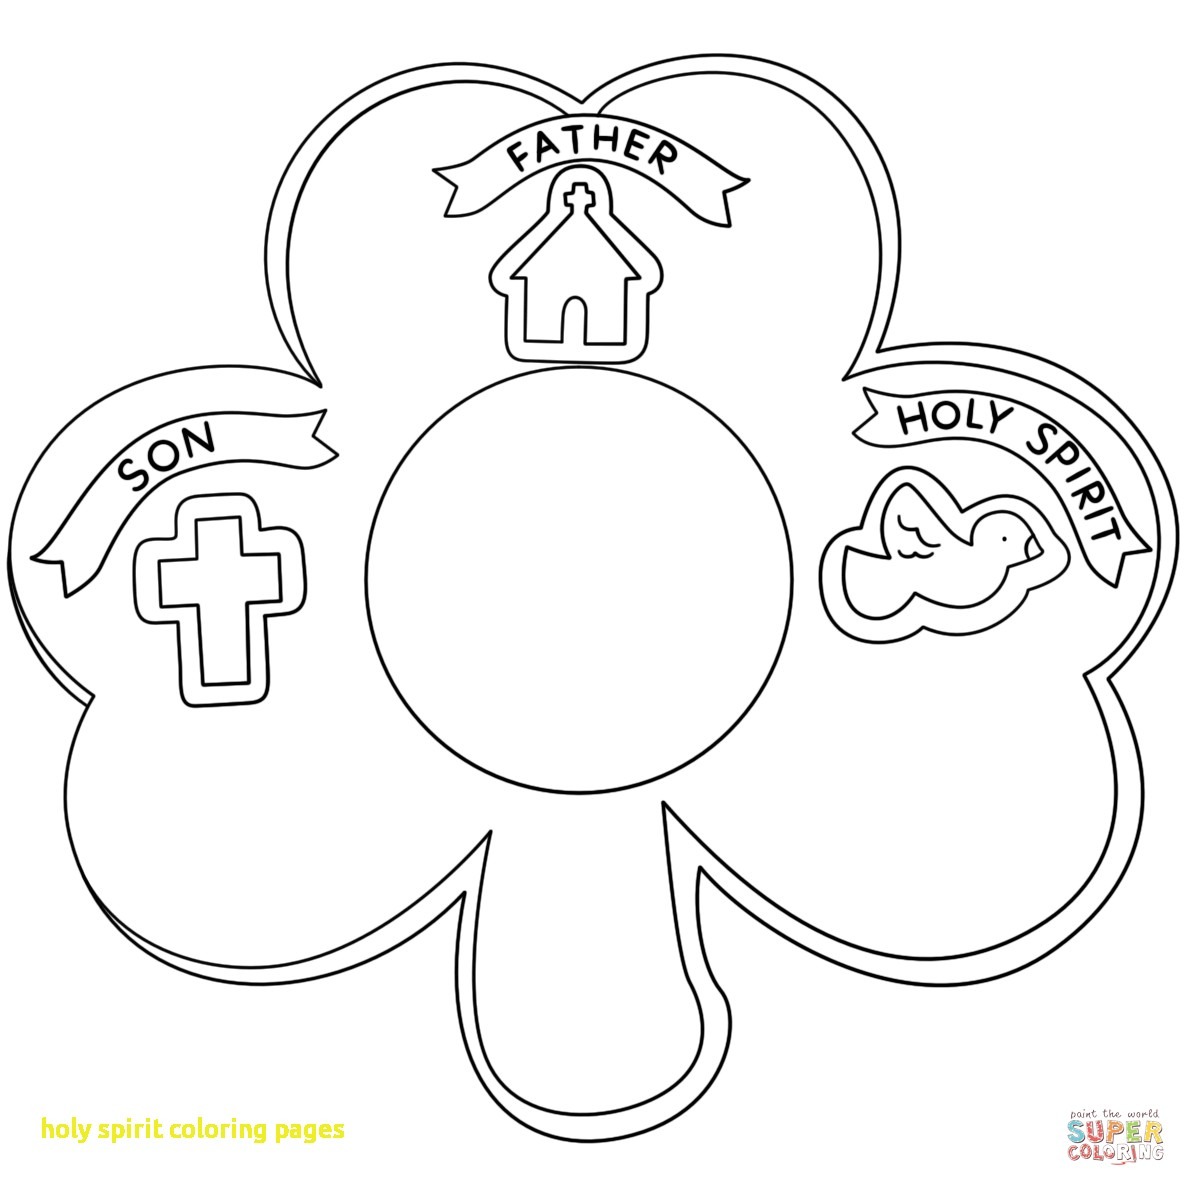 1186x1186 Holy Spirit Coloring Pages With Holy Spirit Coloring Page